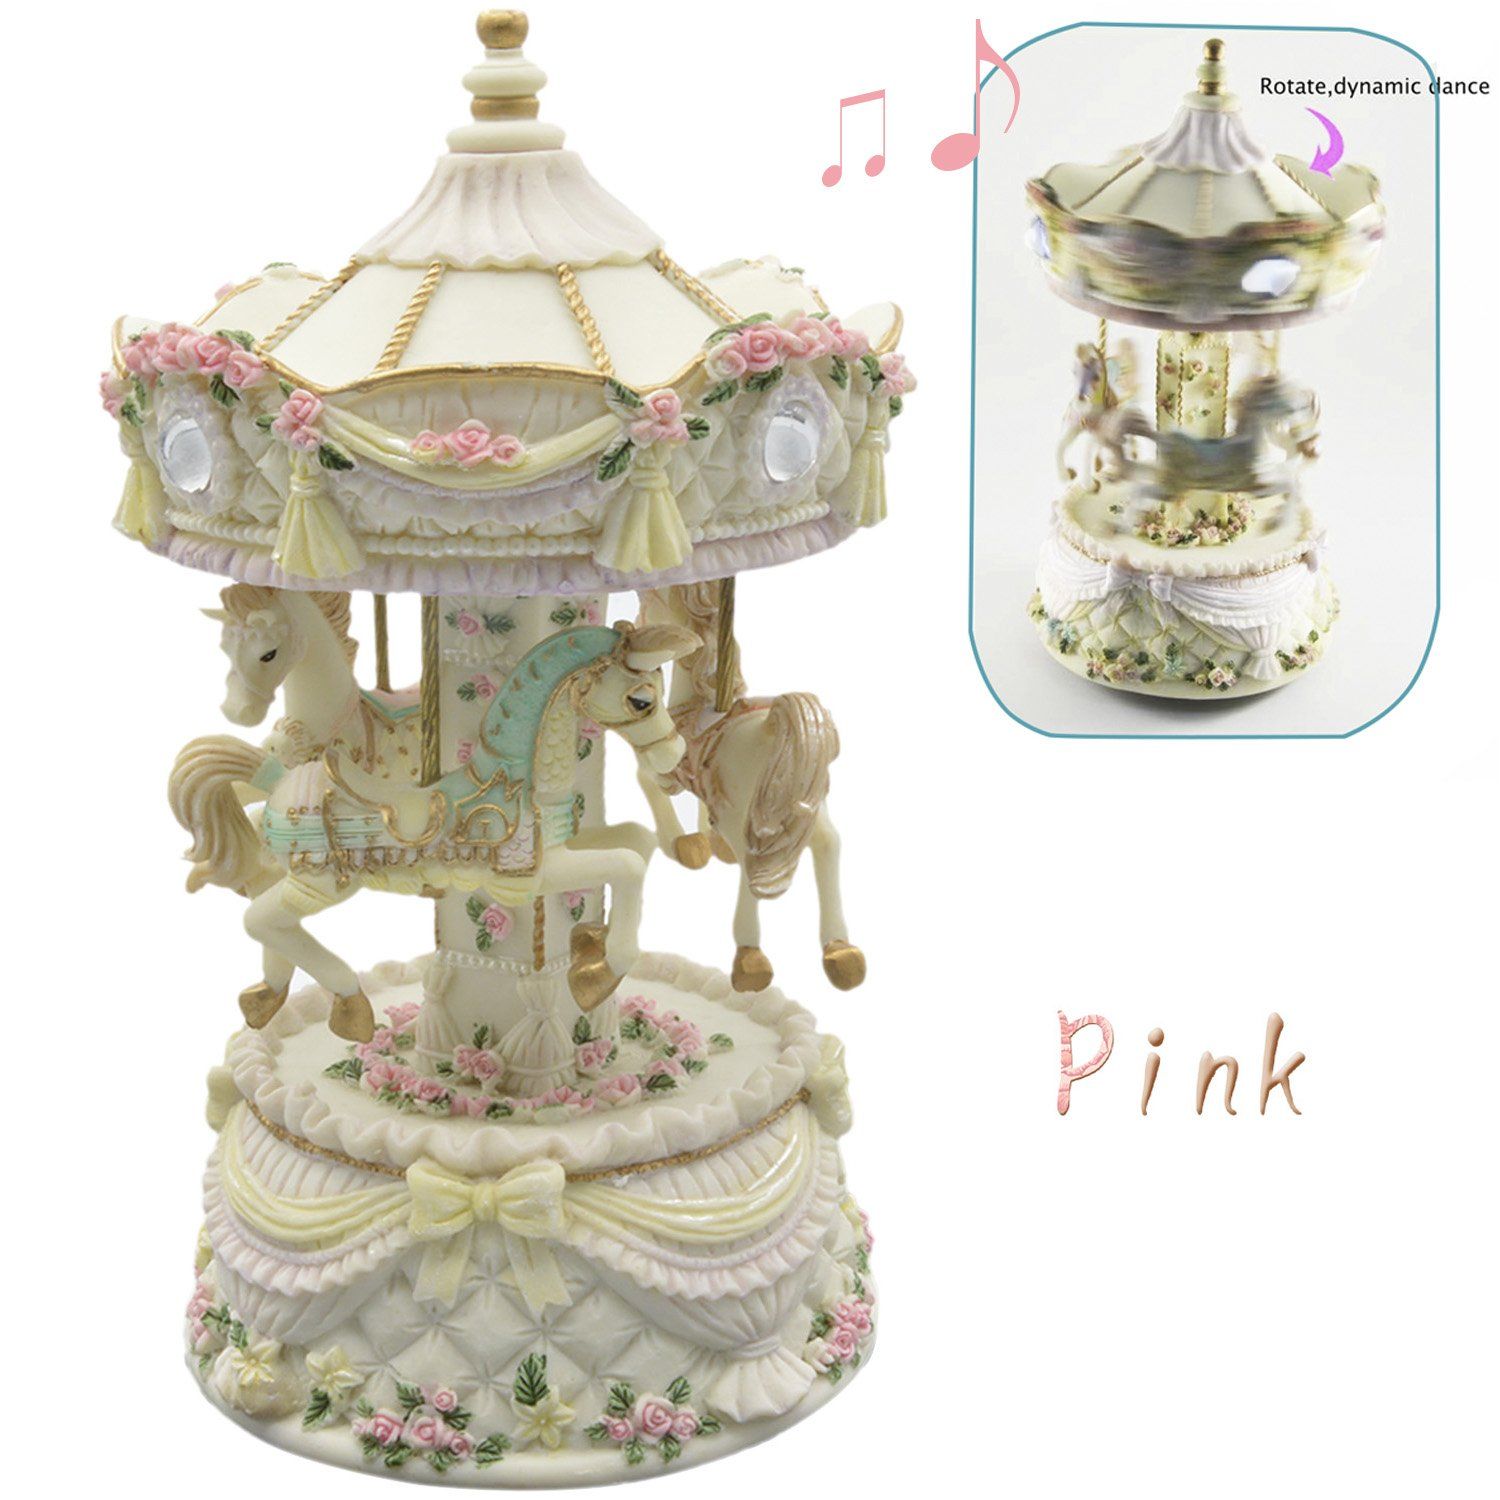 Classic Carousel Horses Rotating Music Musical Box Castle in the Sky Melody Home Decoration Children's Day Holiday Birthday Gift for Kids Children Pink Elisona